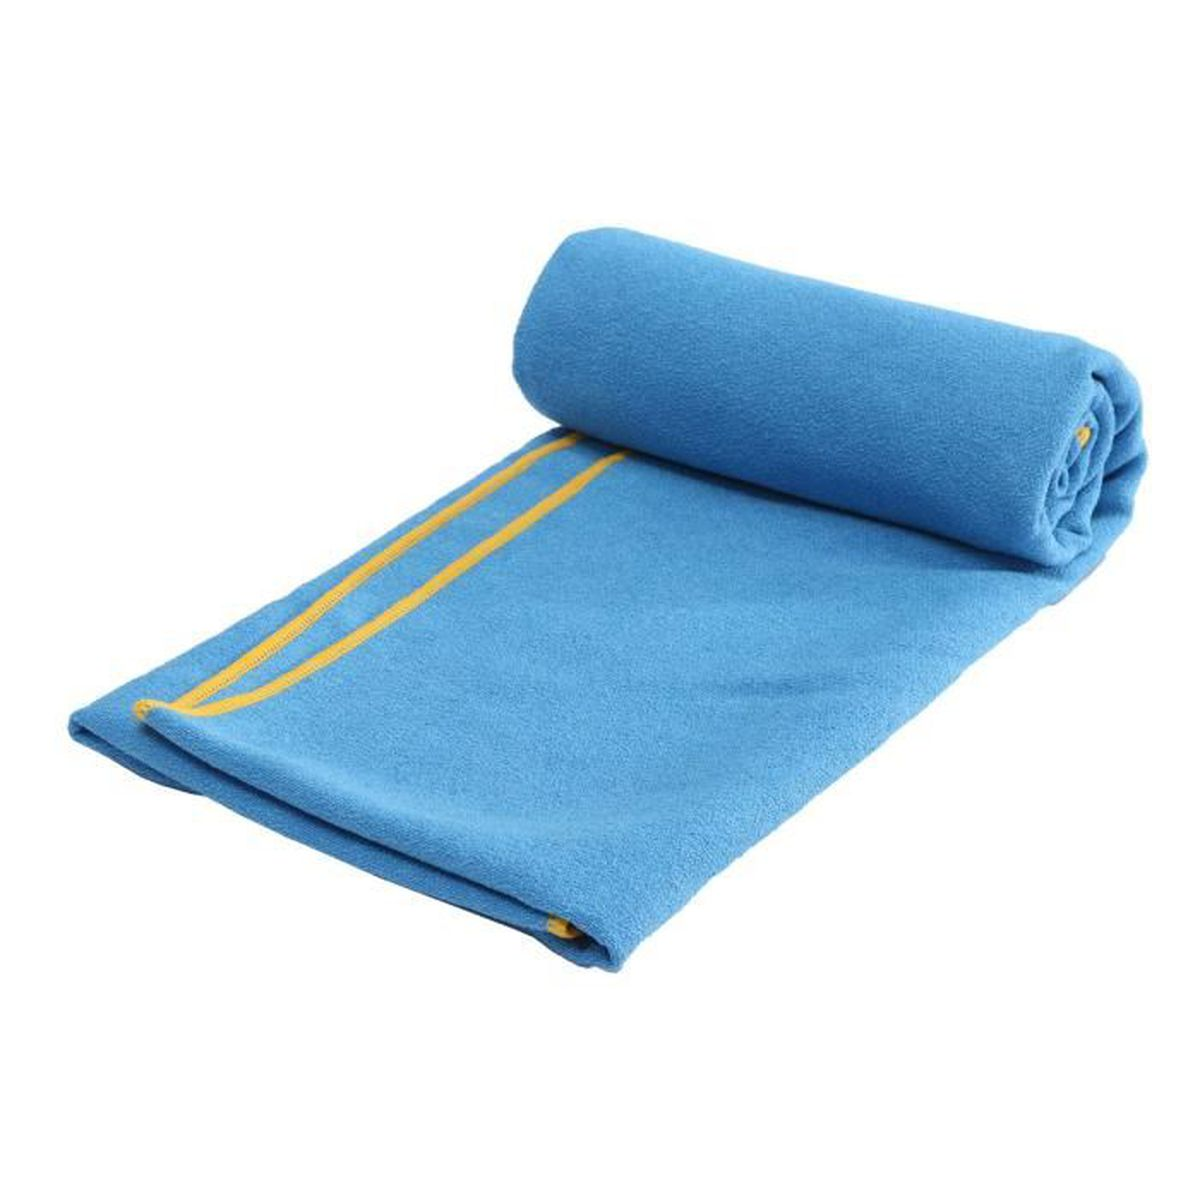 yoga serviettes microfibre de fitness tapis de sport bleu. Black Bedroom Furniture Sets. Home Design Ideas